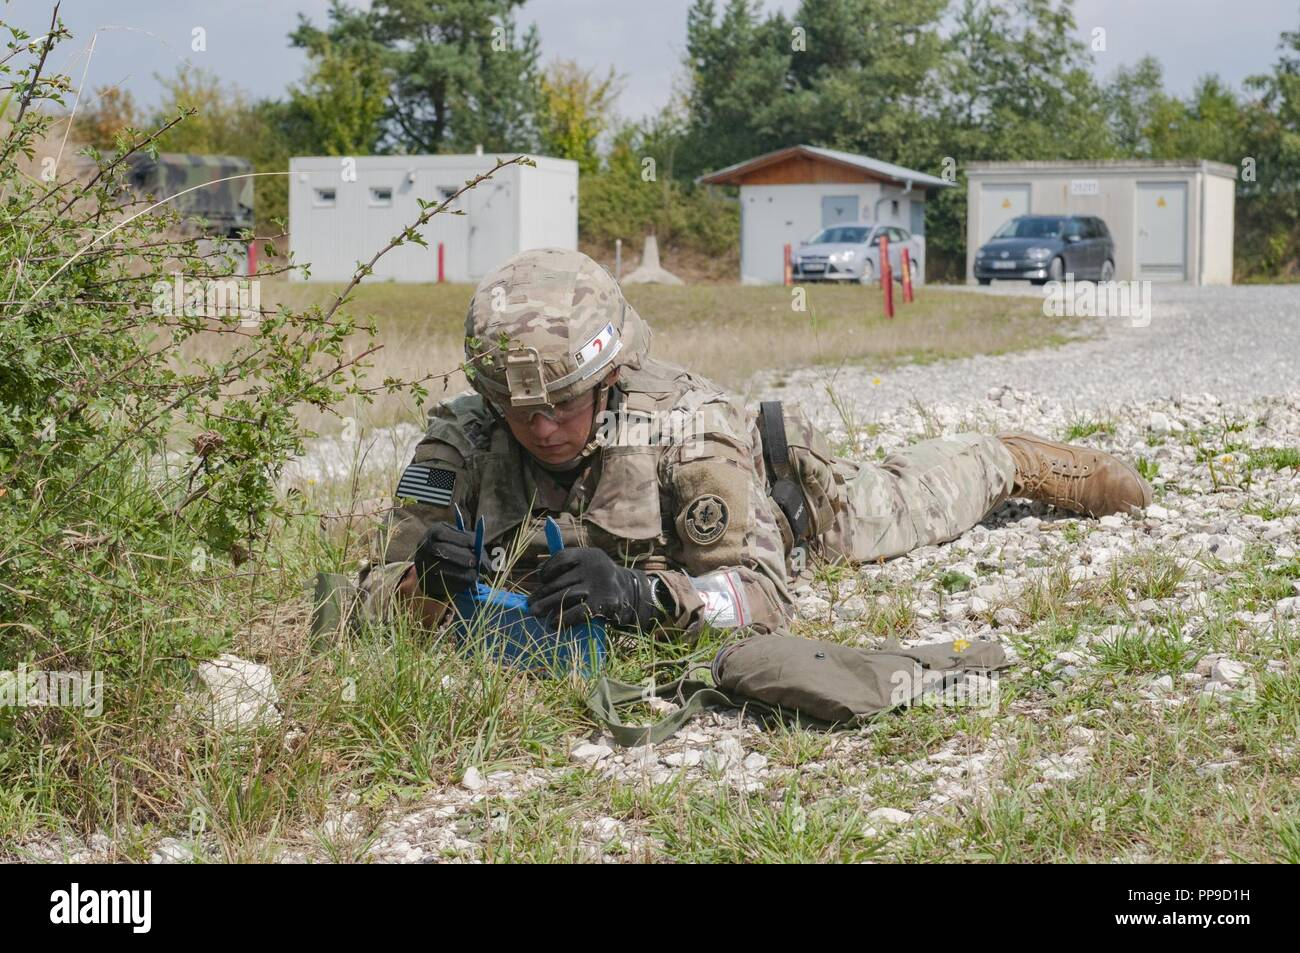 Sgt  Savannah Krekelberg, 2nd Cavalry Regiment, emplaces a M18A1